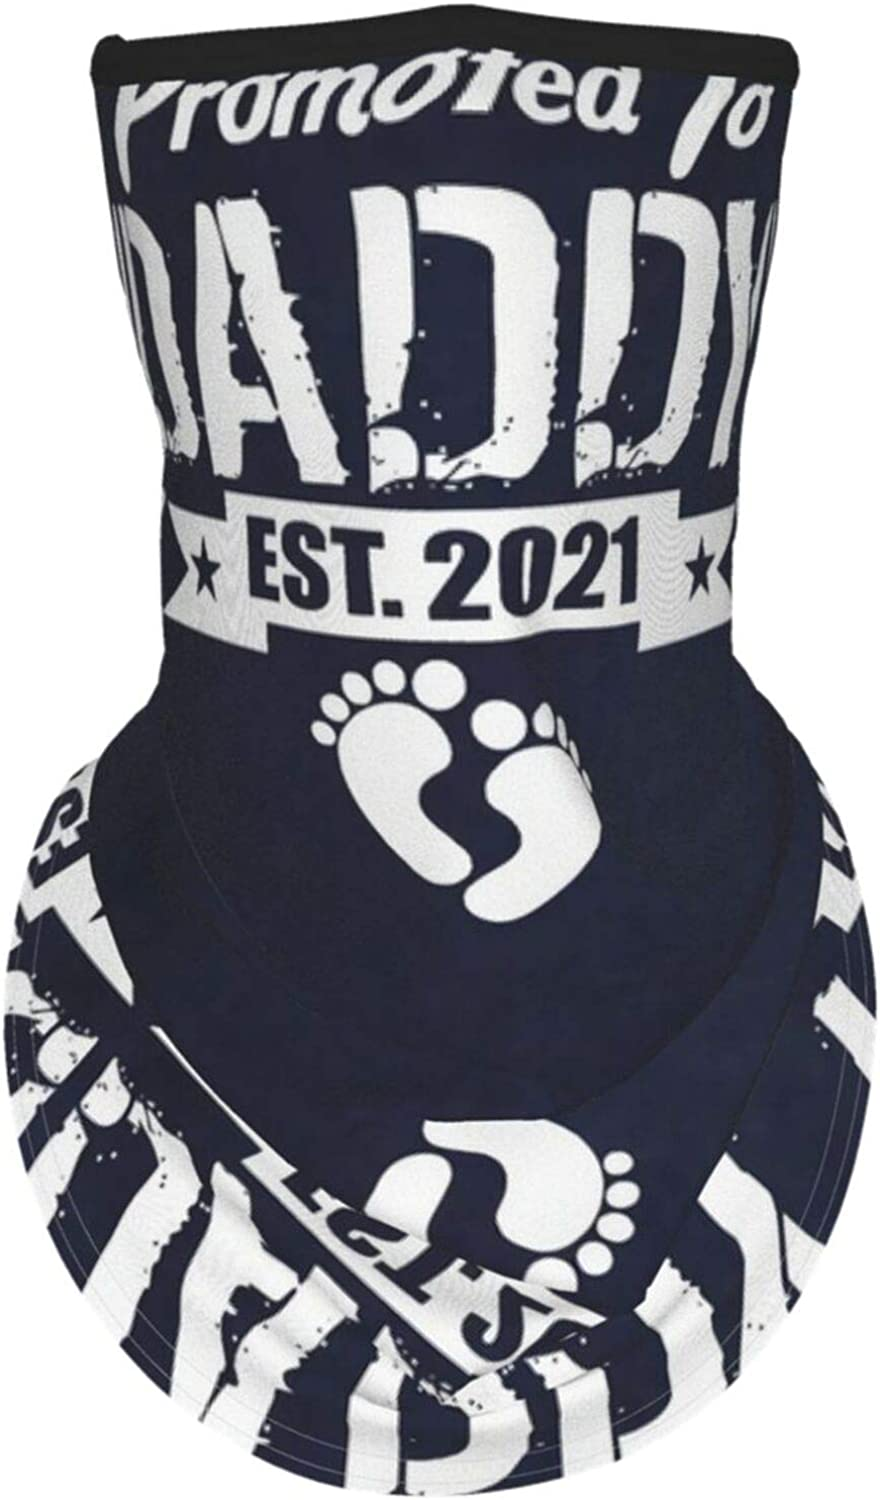 Ear Hangers Face Balaclava Promoted To Daddy Est. 2021 Navy Protective Cover Wristband Bandanas Neck Gaiter Dust-Proof,Anti-Pungent Gas,Washable